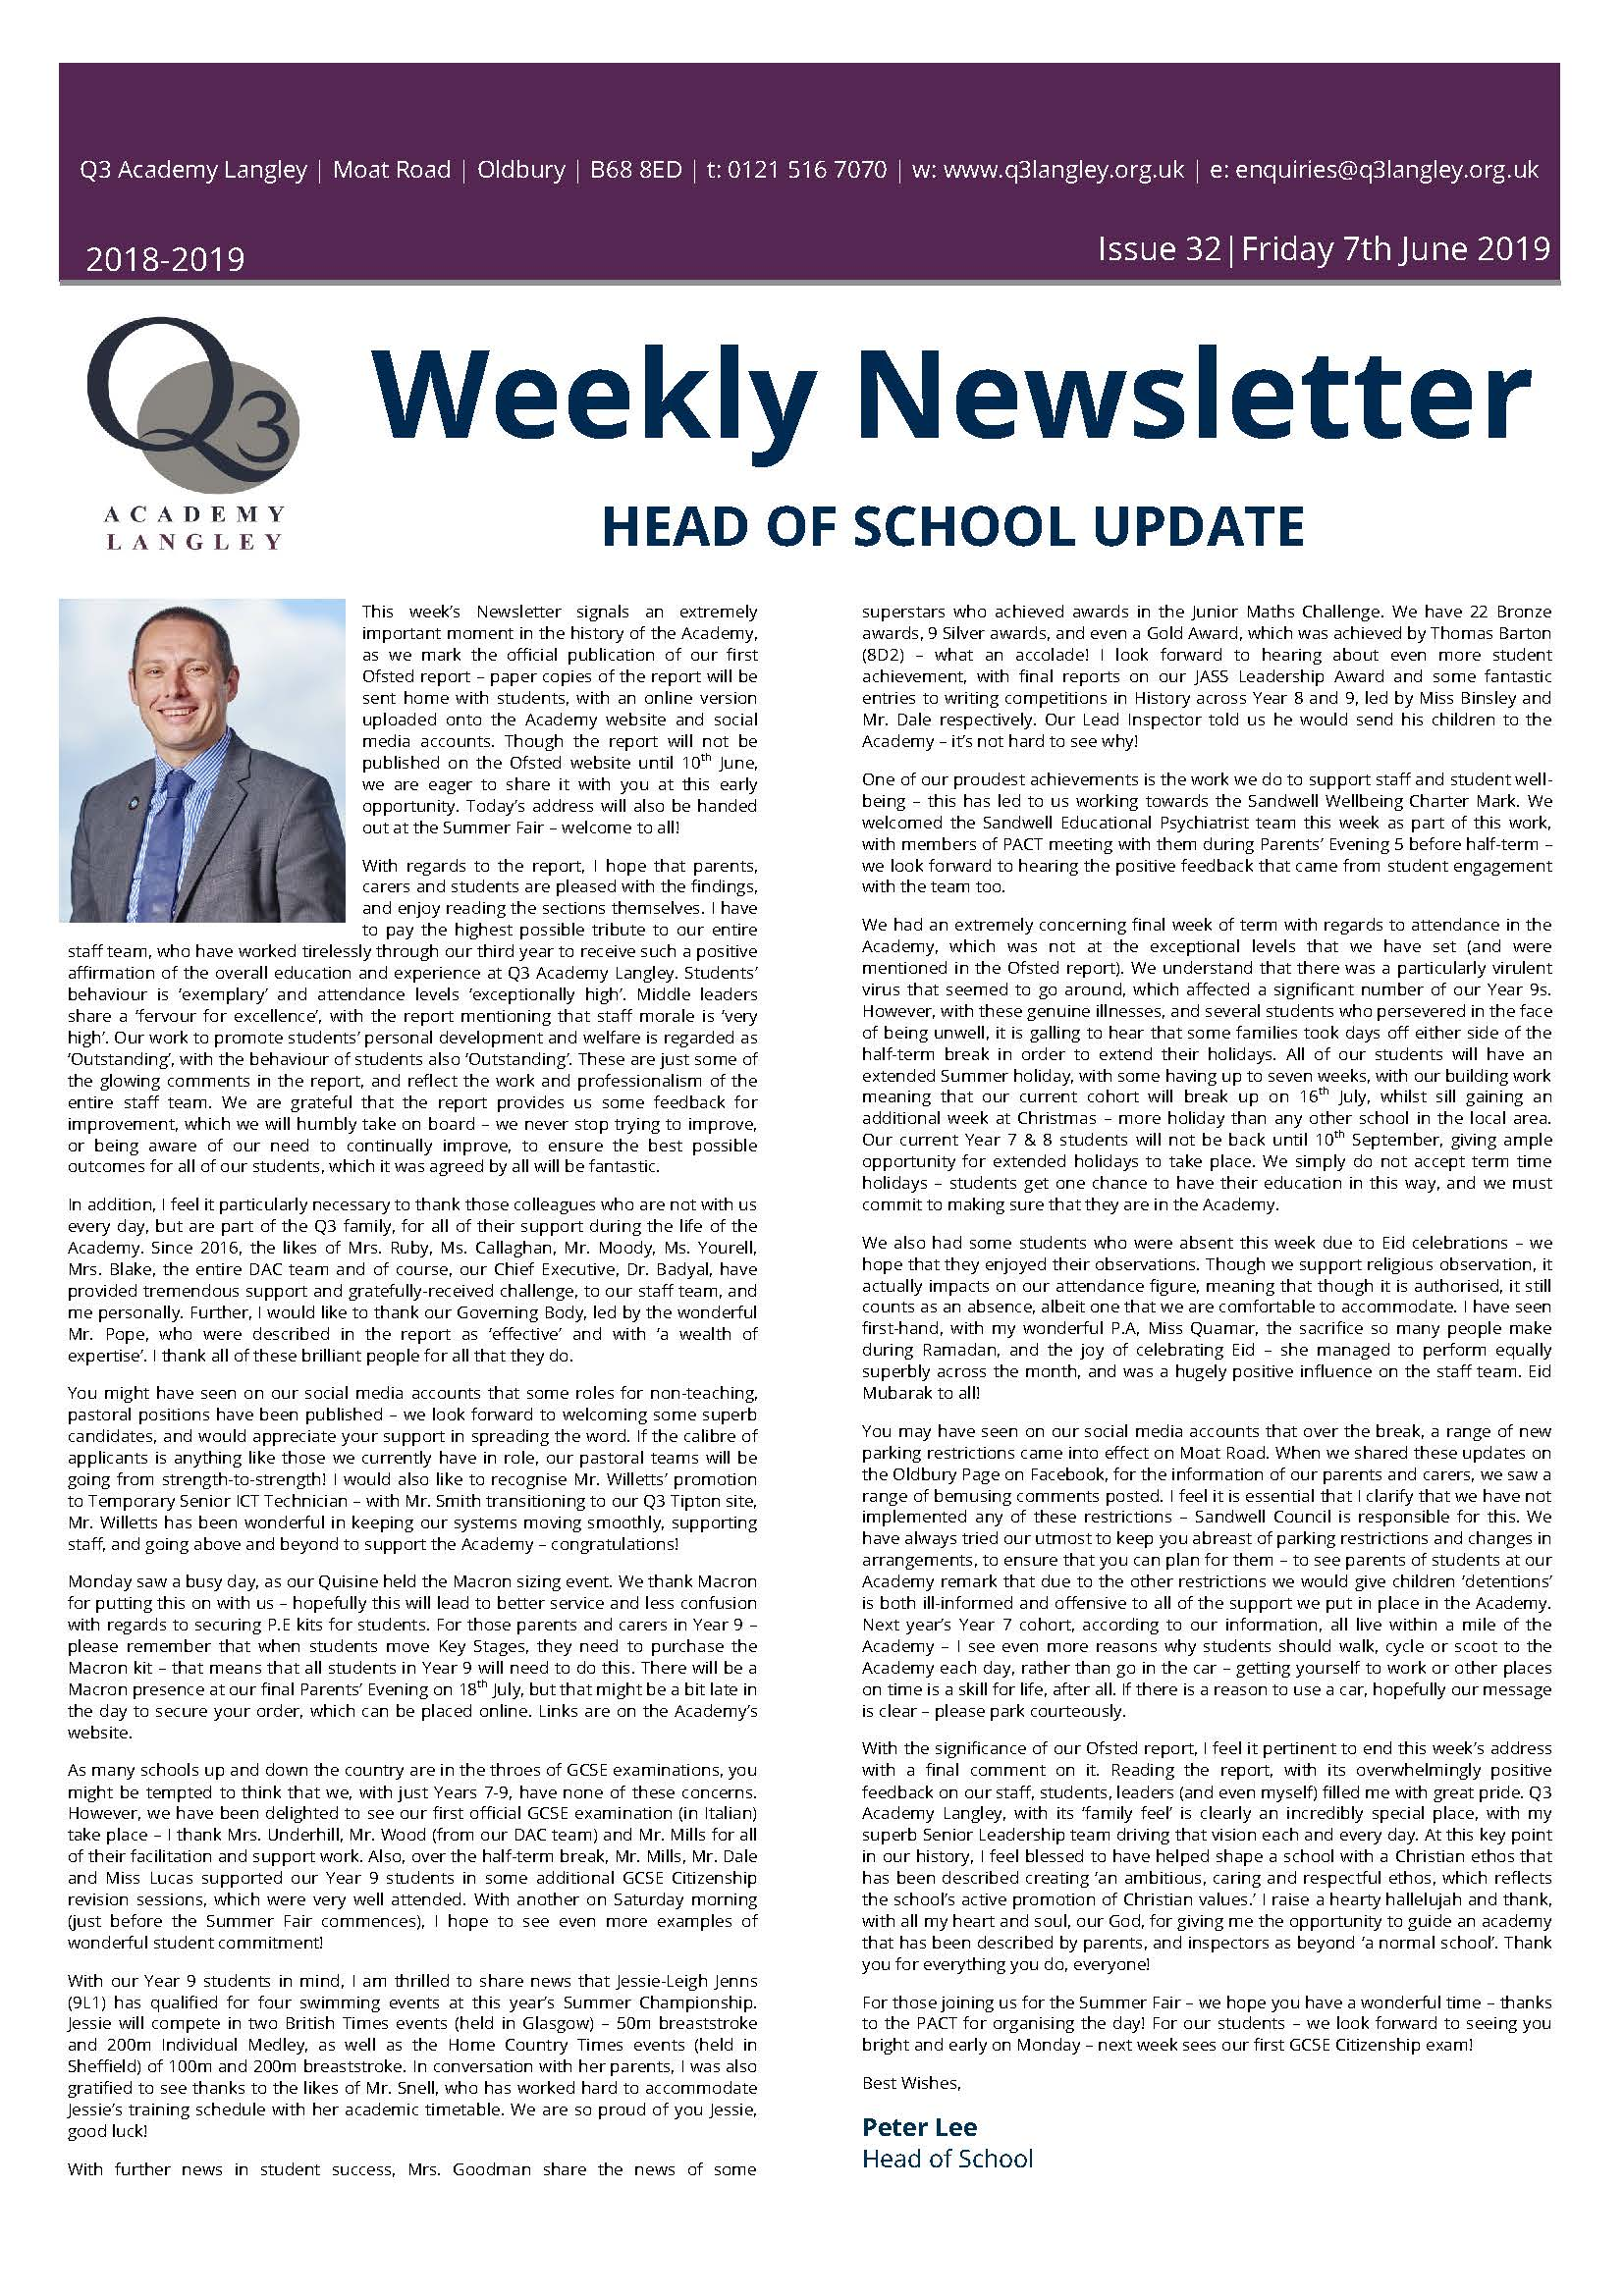 Newsletter - Issue 32_Page_1 | Q3 Academy Langley